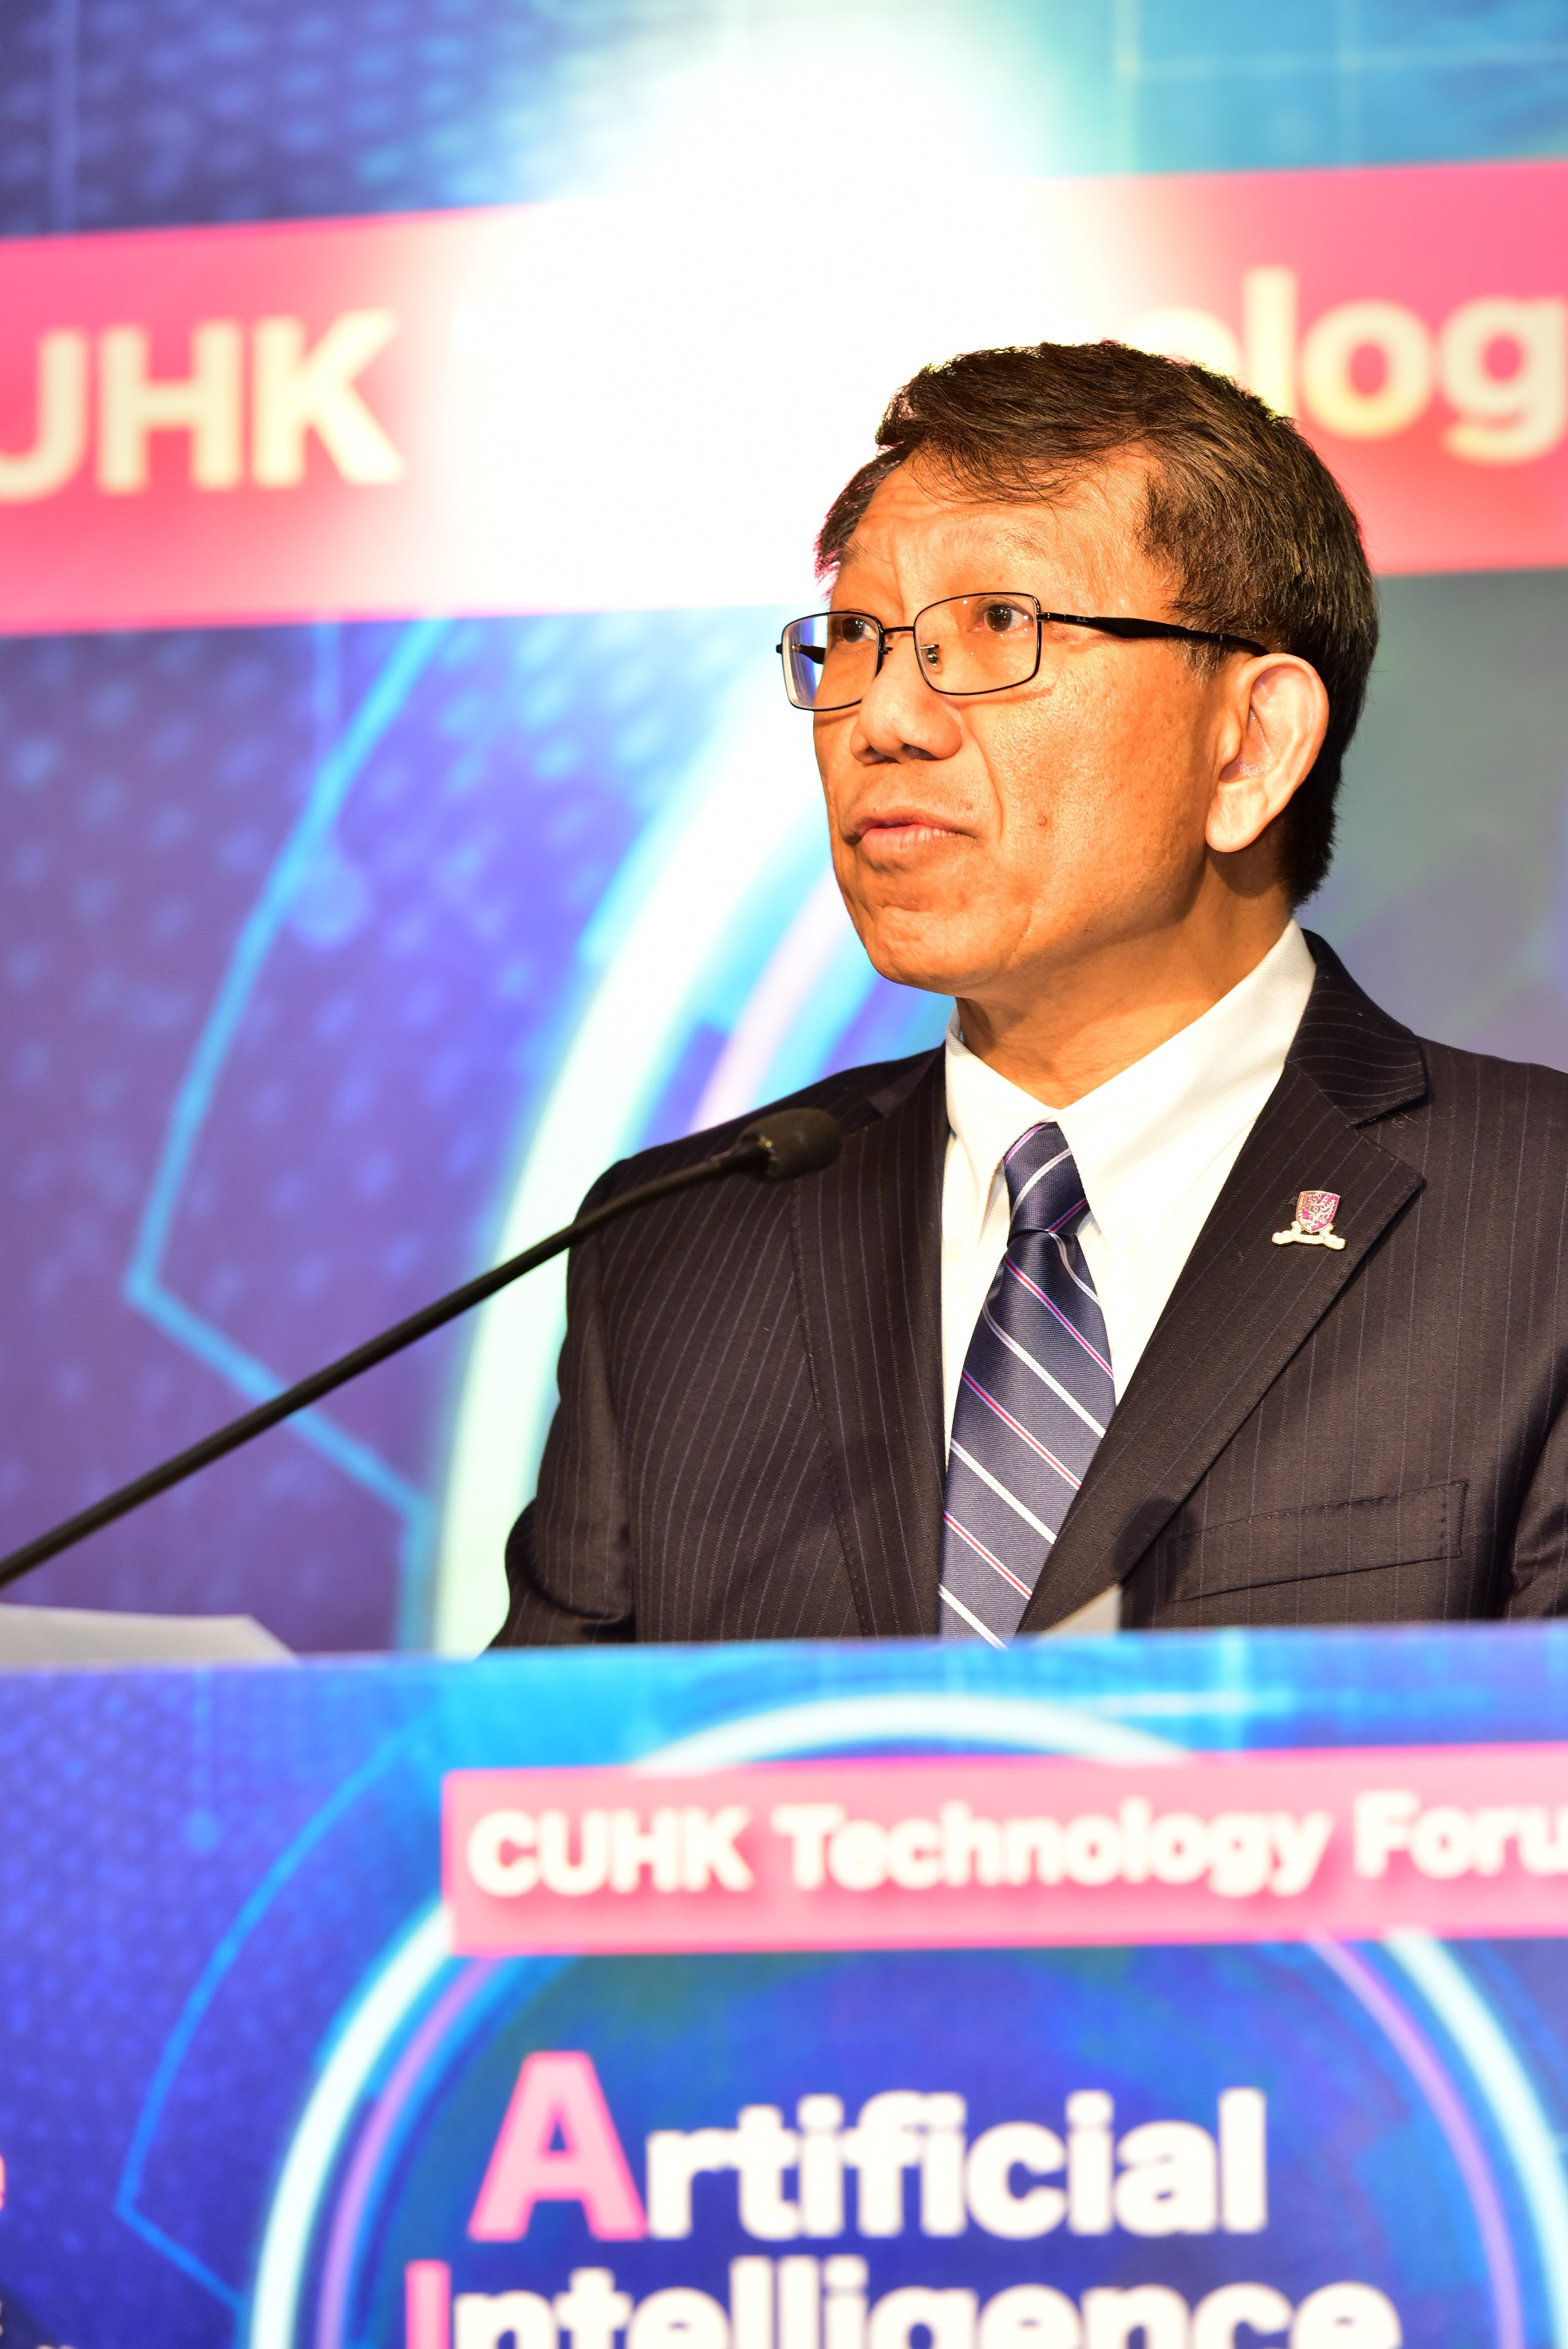 Prof. Rocky S. TUAN, Vice-Chancellor and President of CUHK